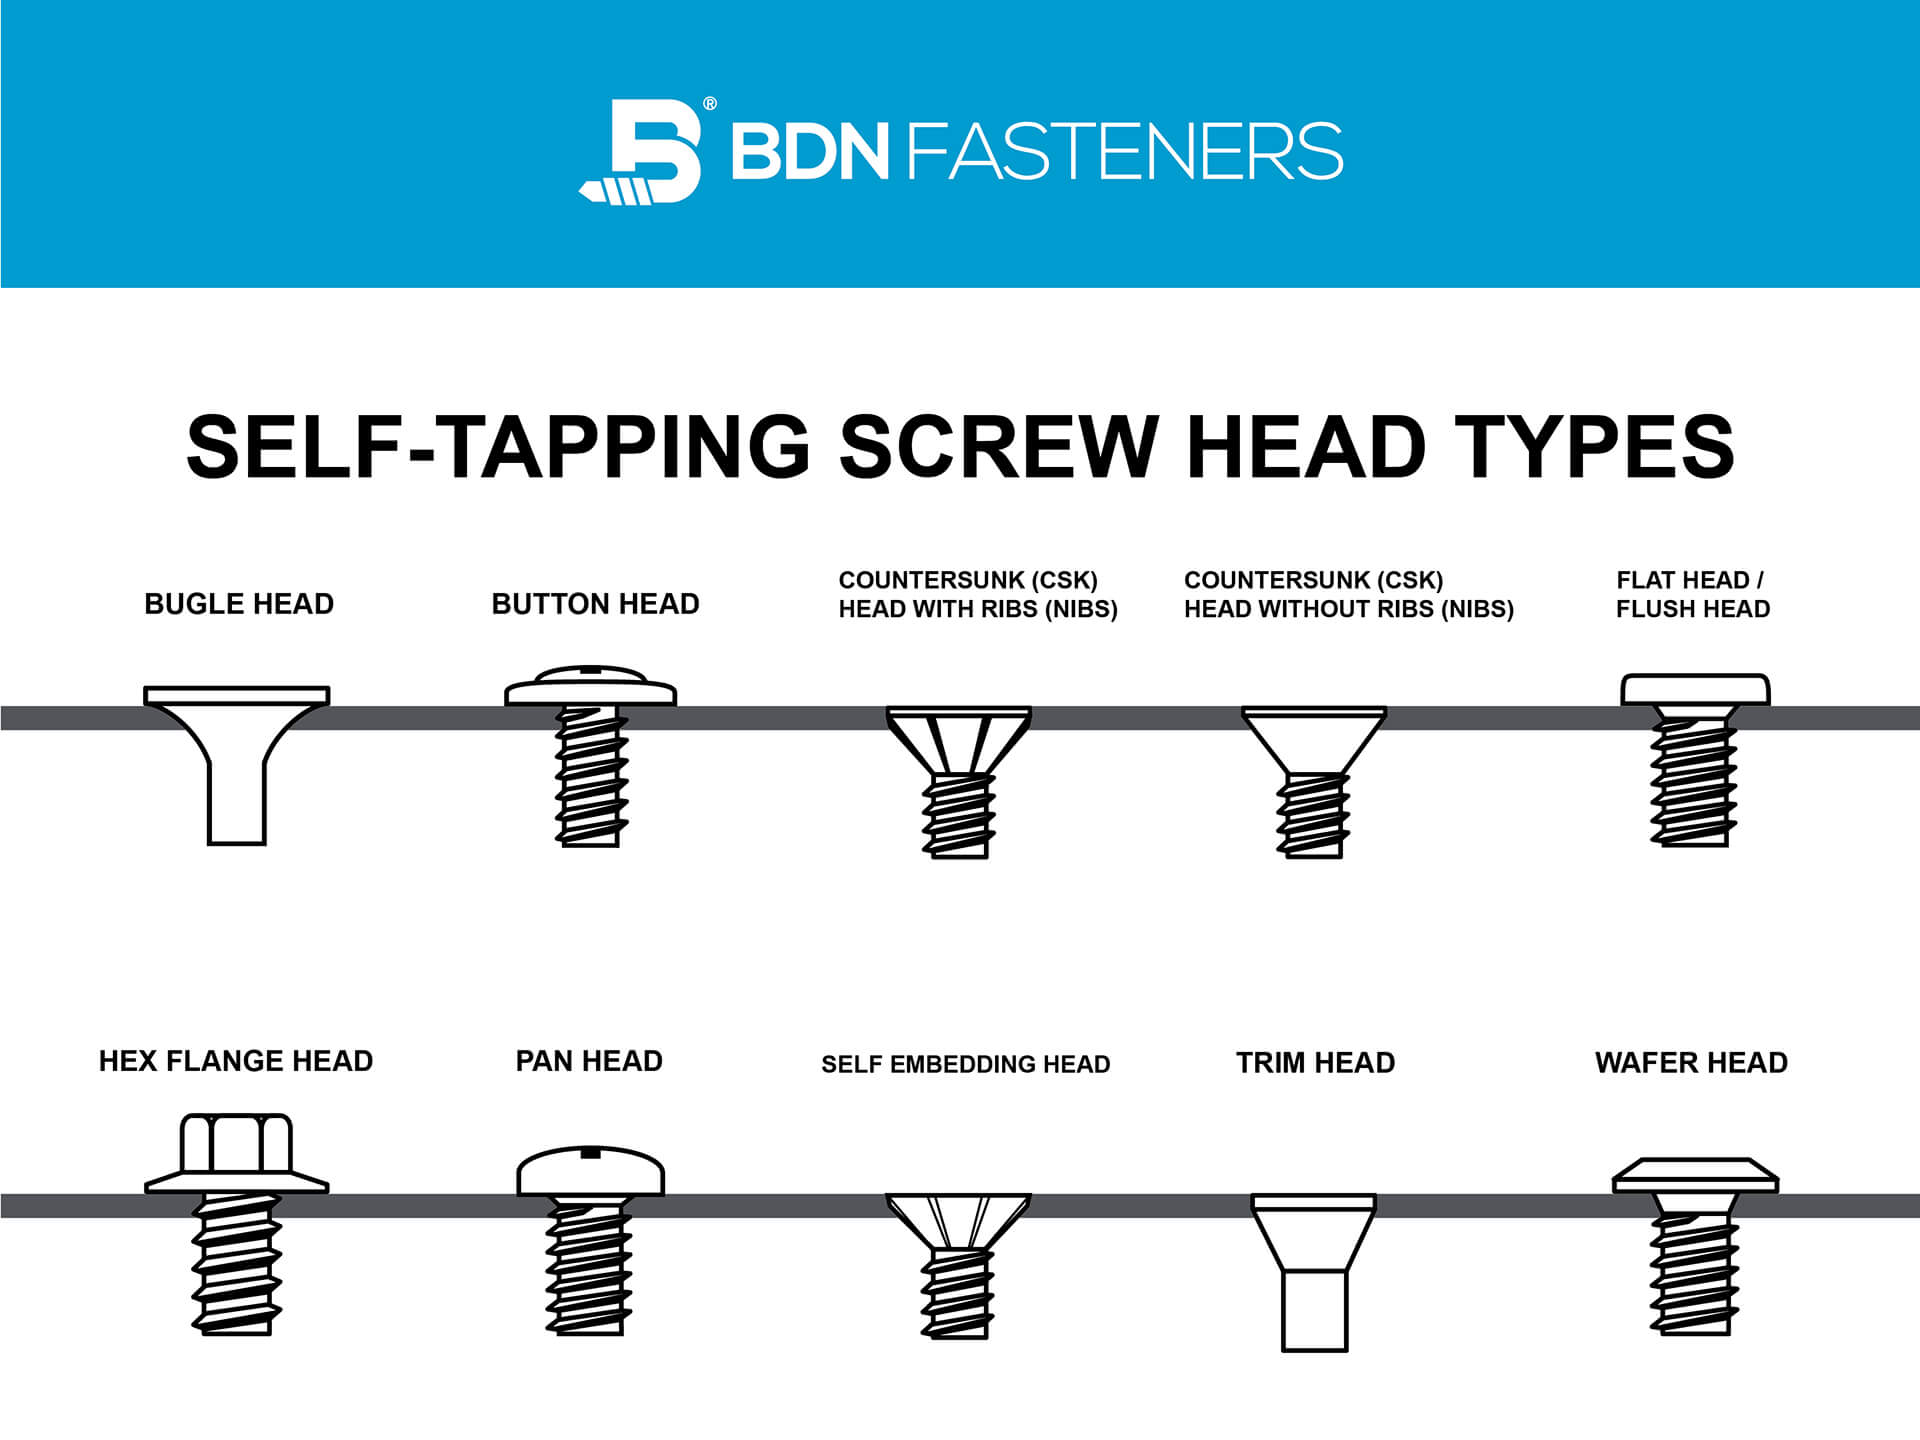 Self-tapping screw head types